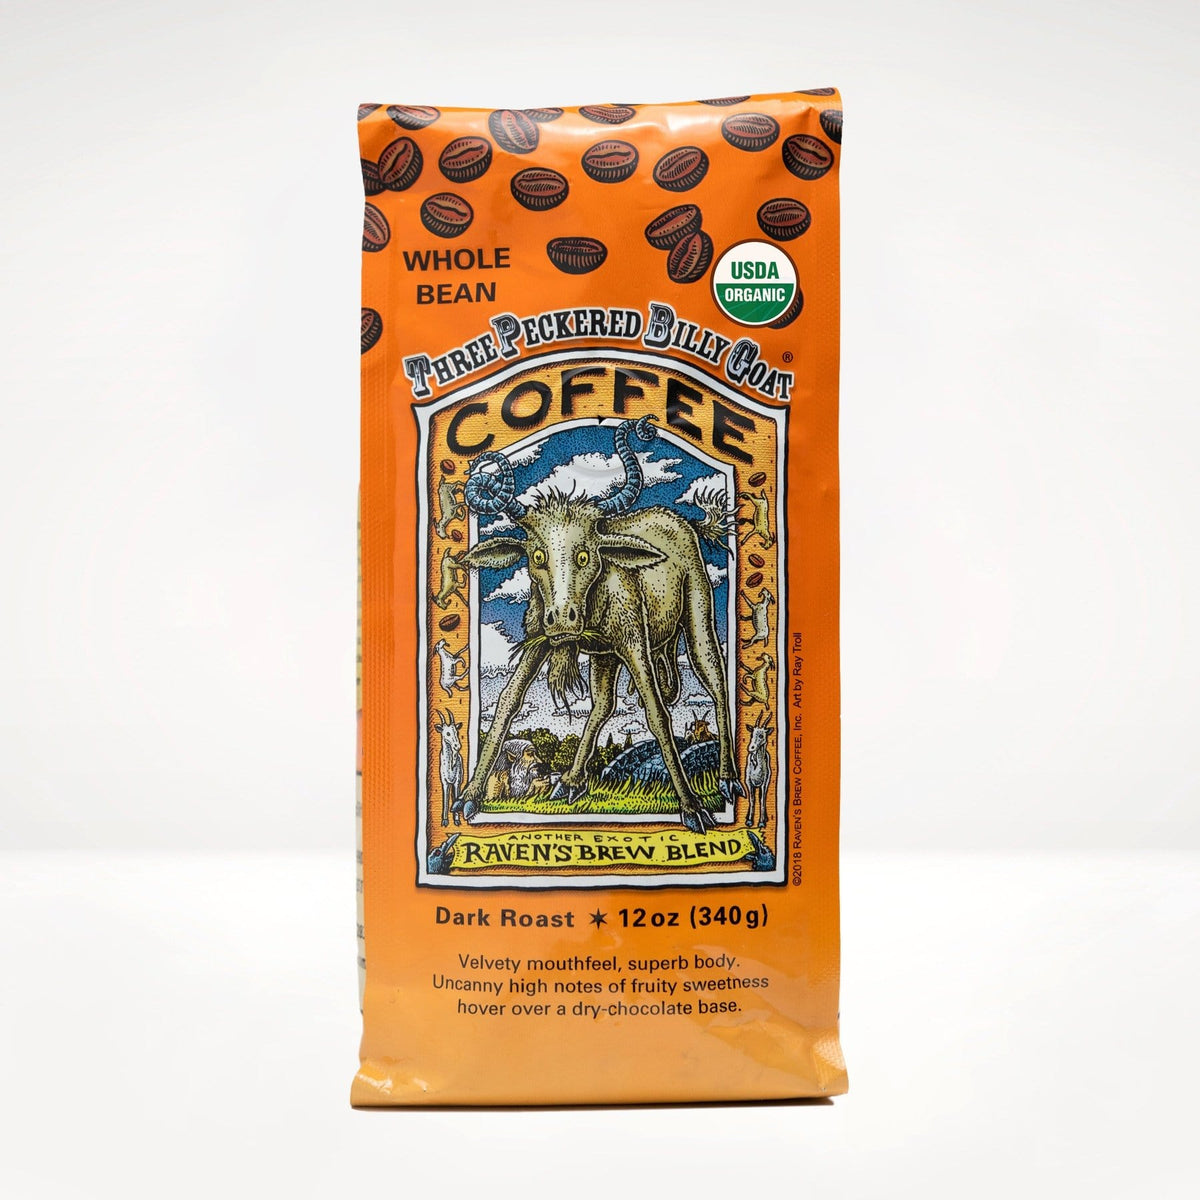 12oz Organic Three Peckered Billy Goat® Coffee